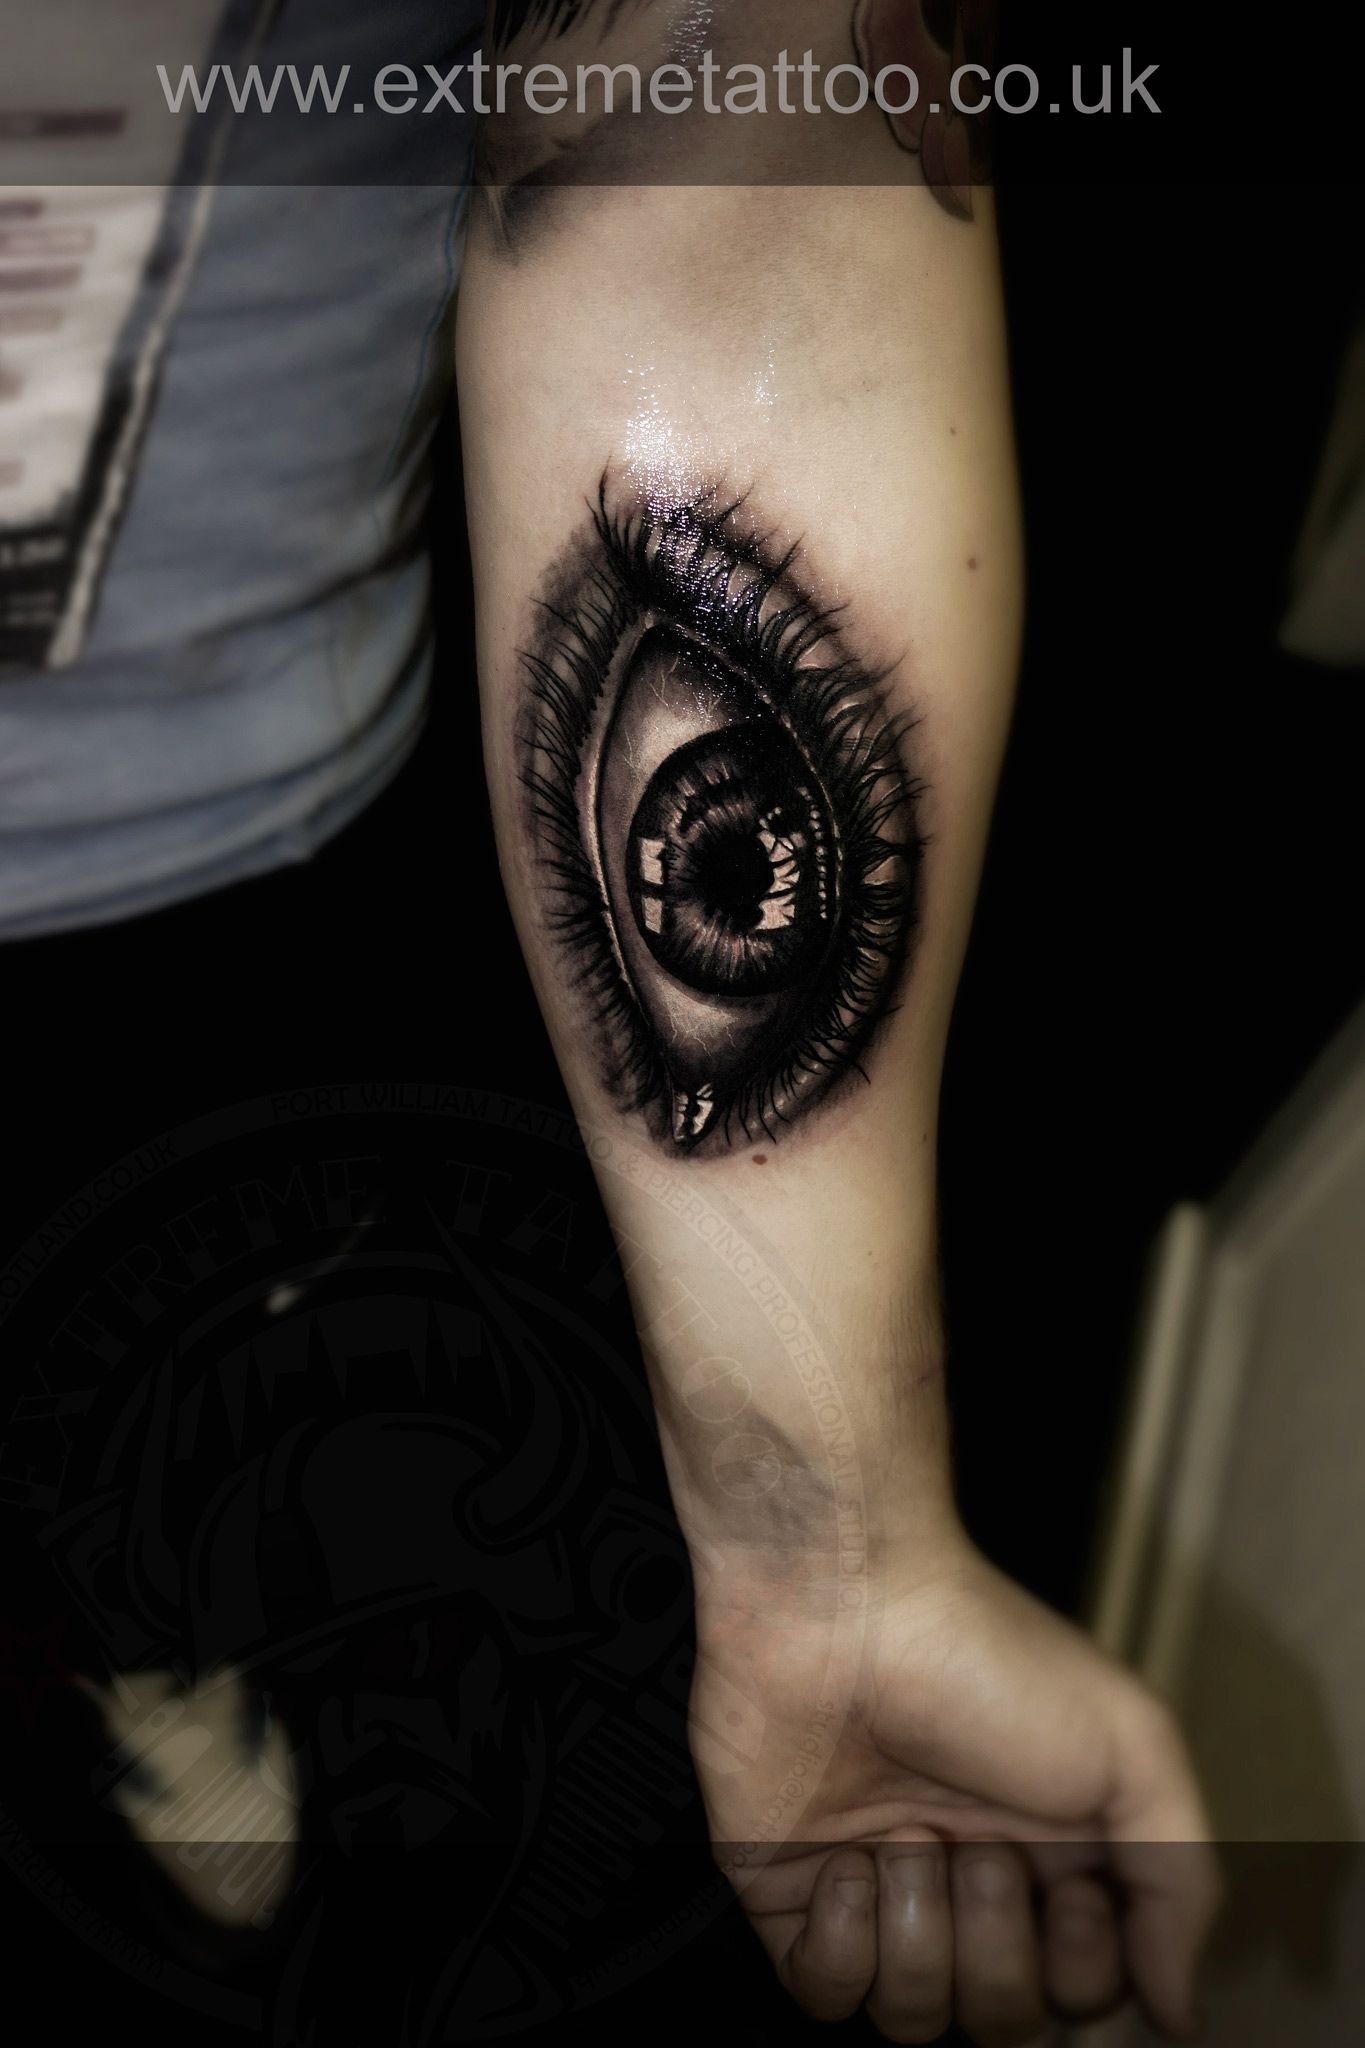 Eye tattoo,sleeve in progress,Gabi Tomescu.Extreme tattoo